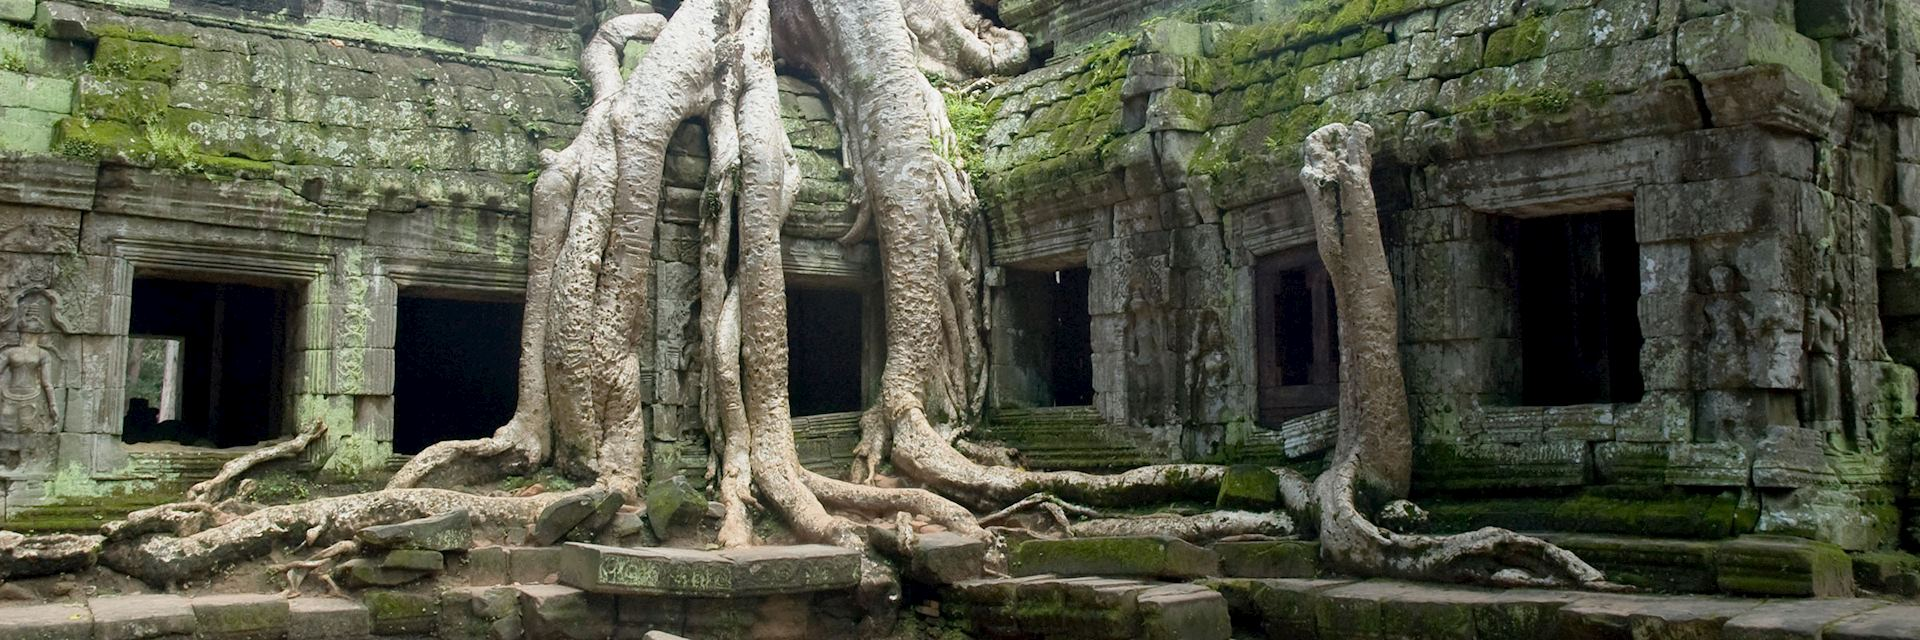 Banyan tree roots at Ta Prohm Temple, Angkor Wat, Cambodia